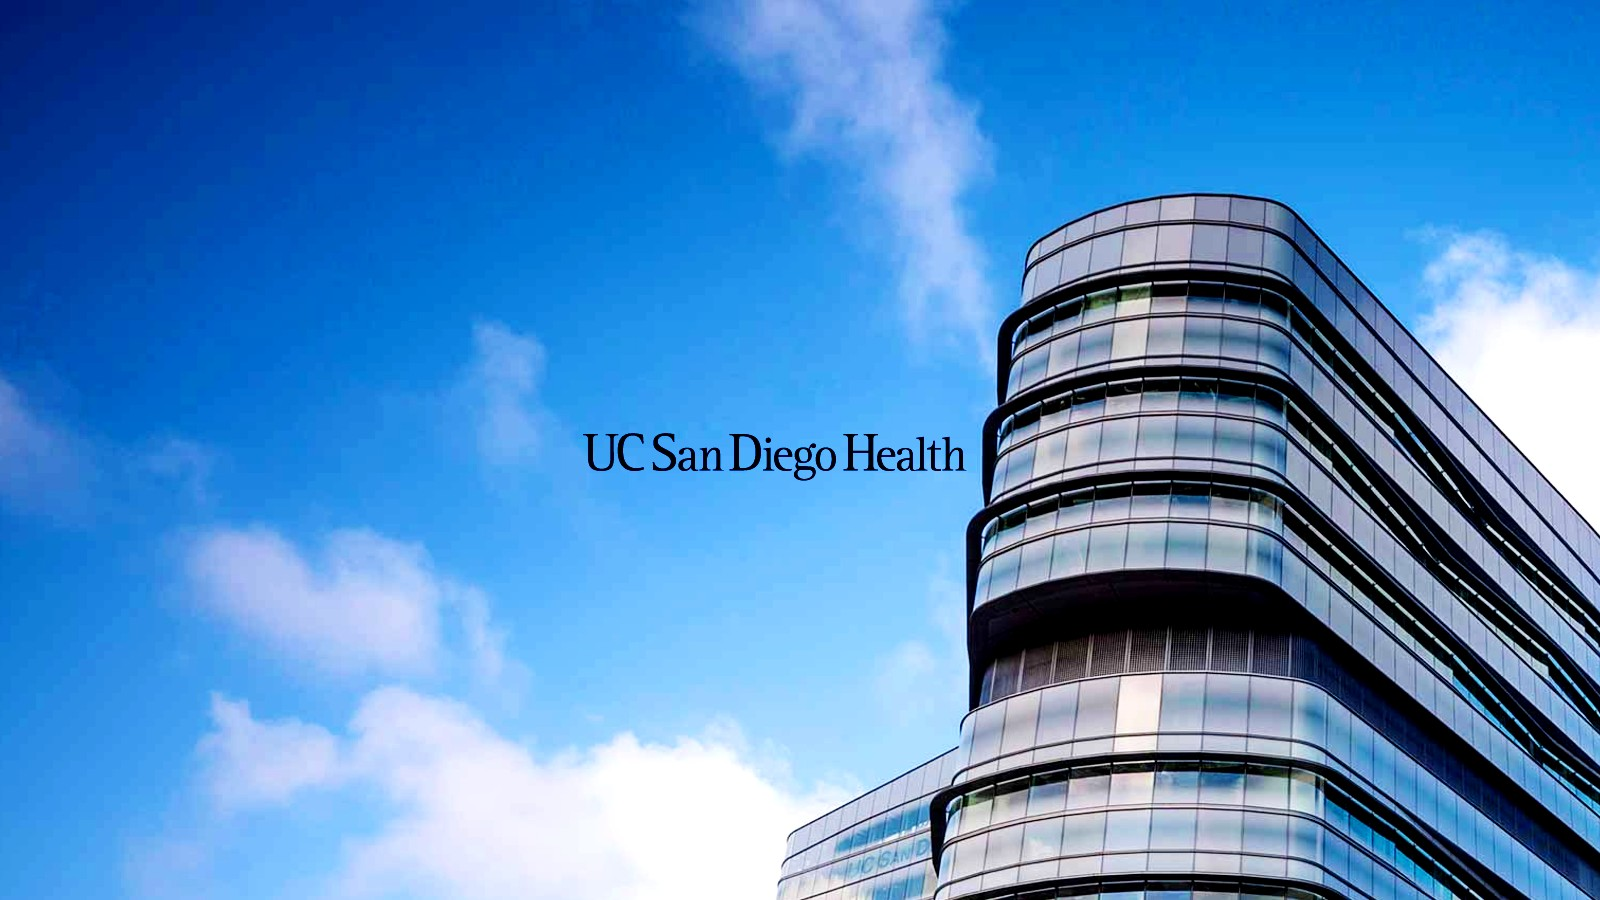 UC San Diego Health discloses data breach after phishing attack